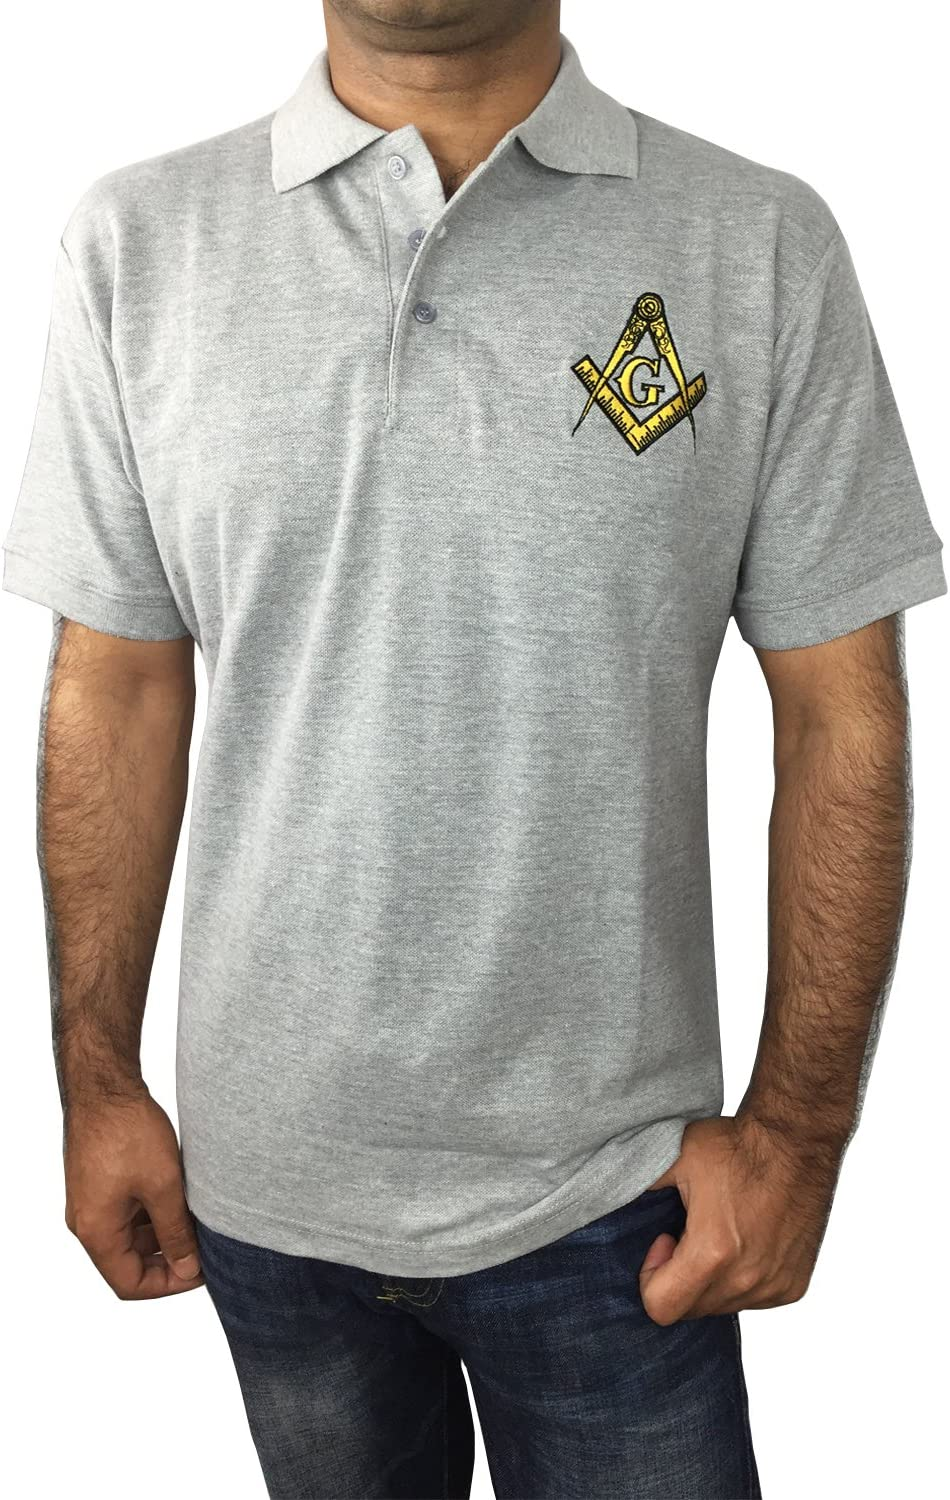 Large, Gray Unique Regalia Masonic Polo Shirt with Embroidered Square Compass /& G for Masons